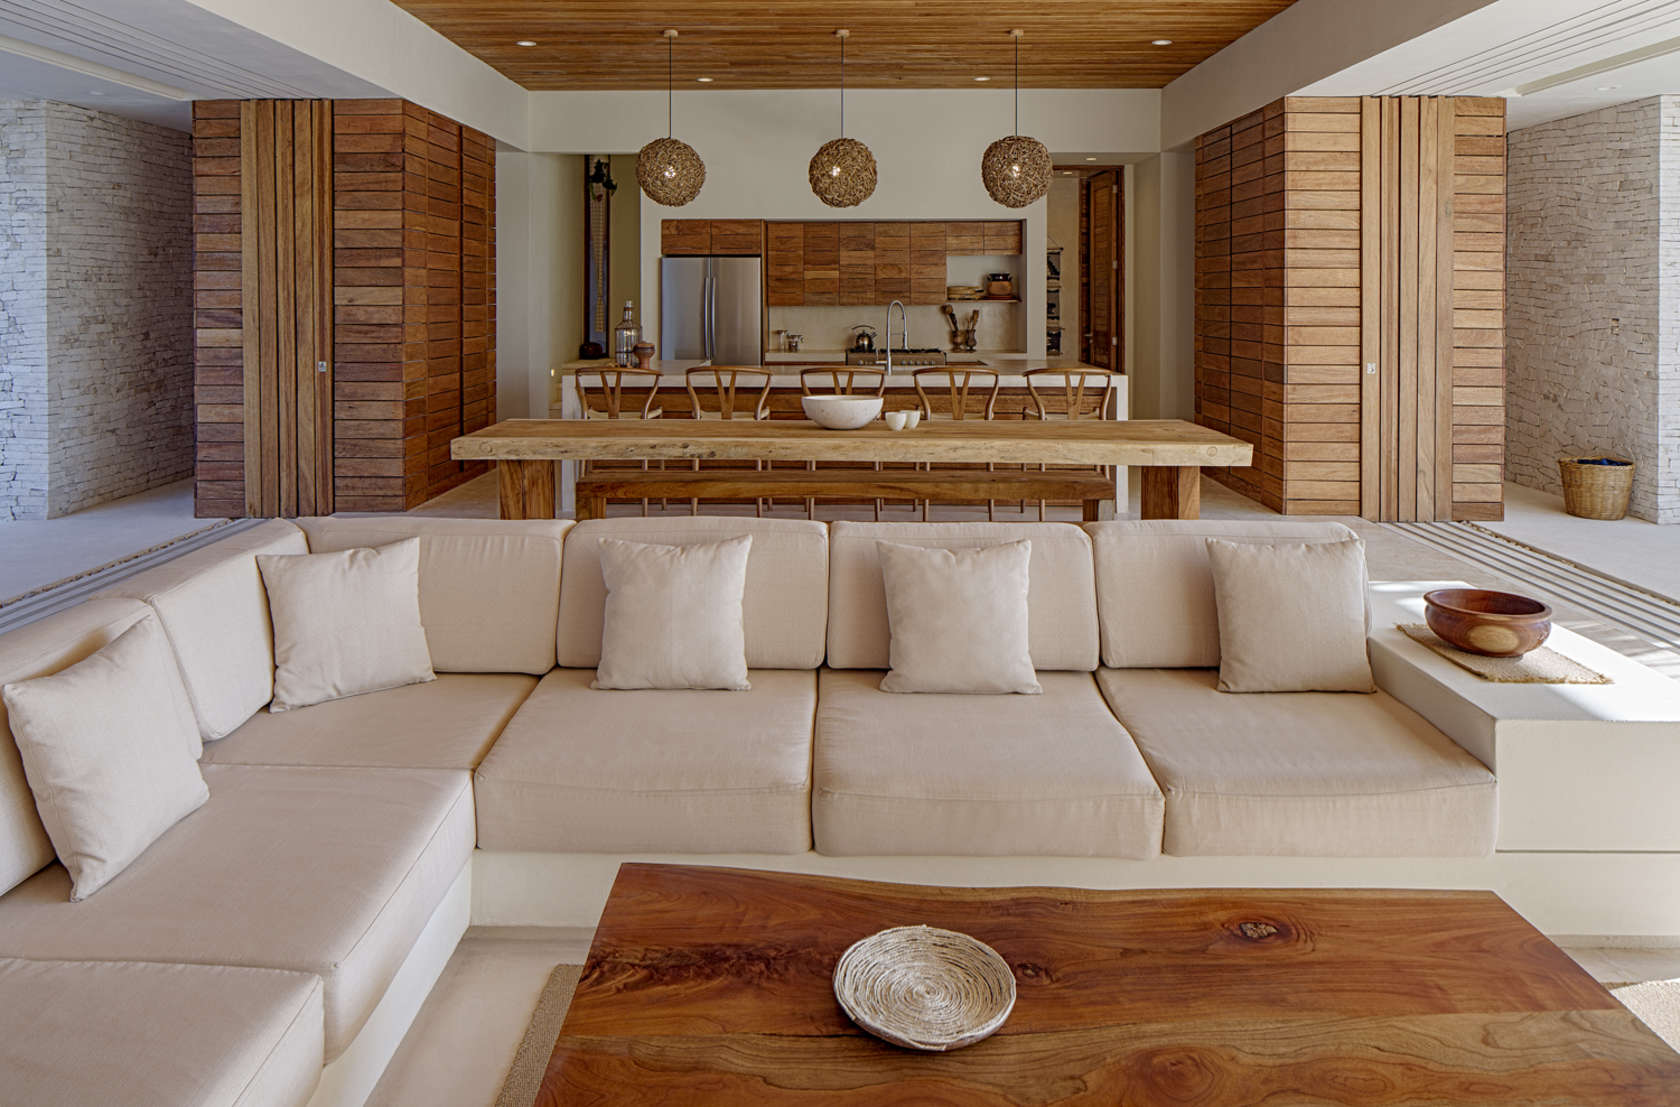 Natural Wood Coffee Table - Eco friendly house in mexico does not sacrifice style